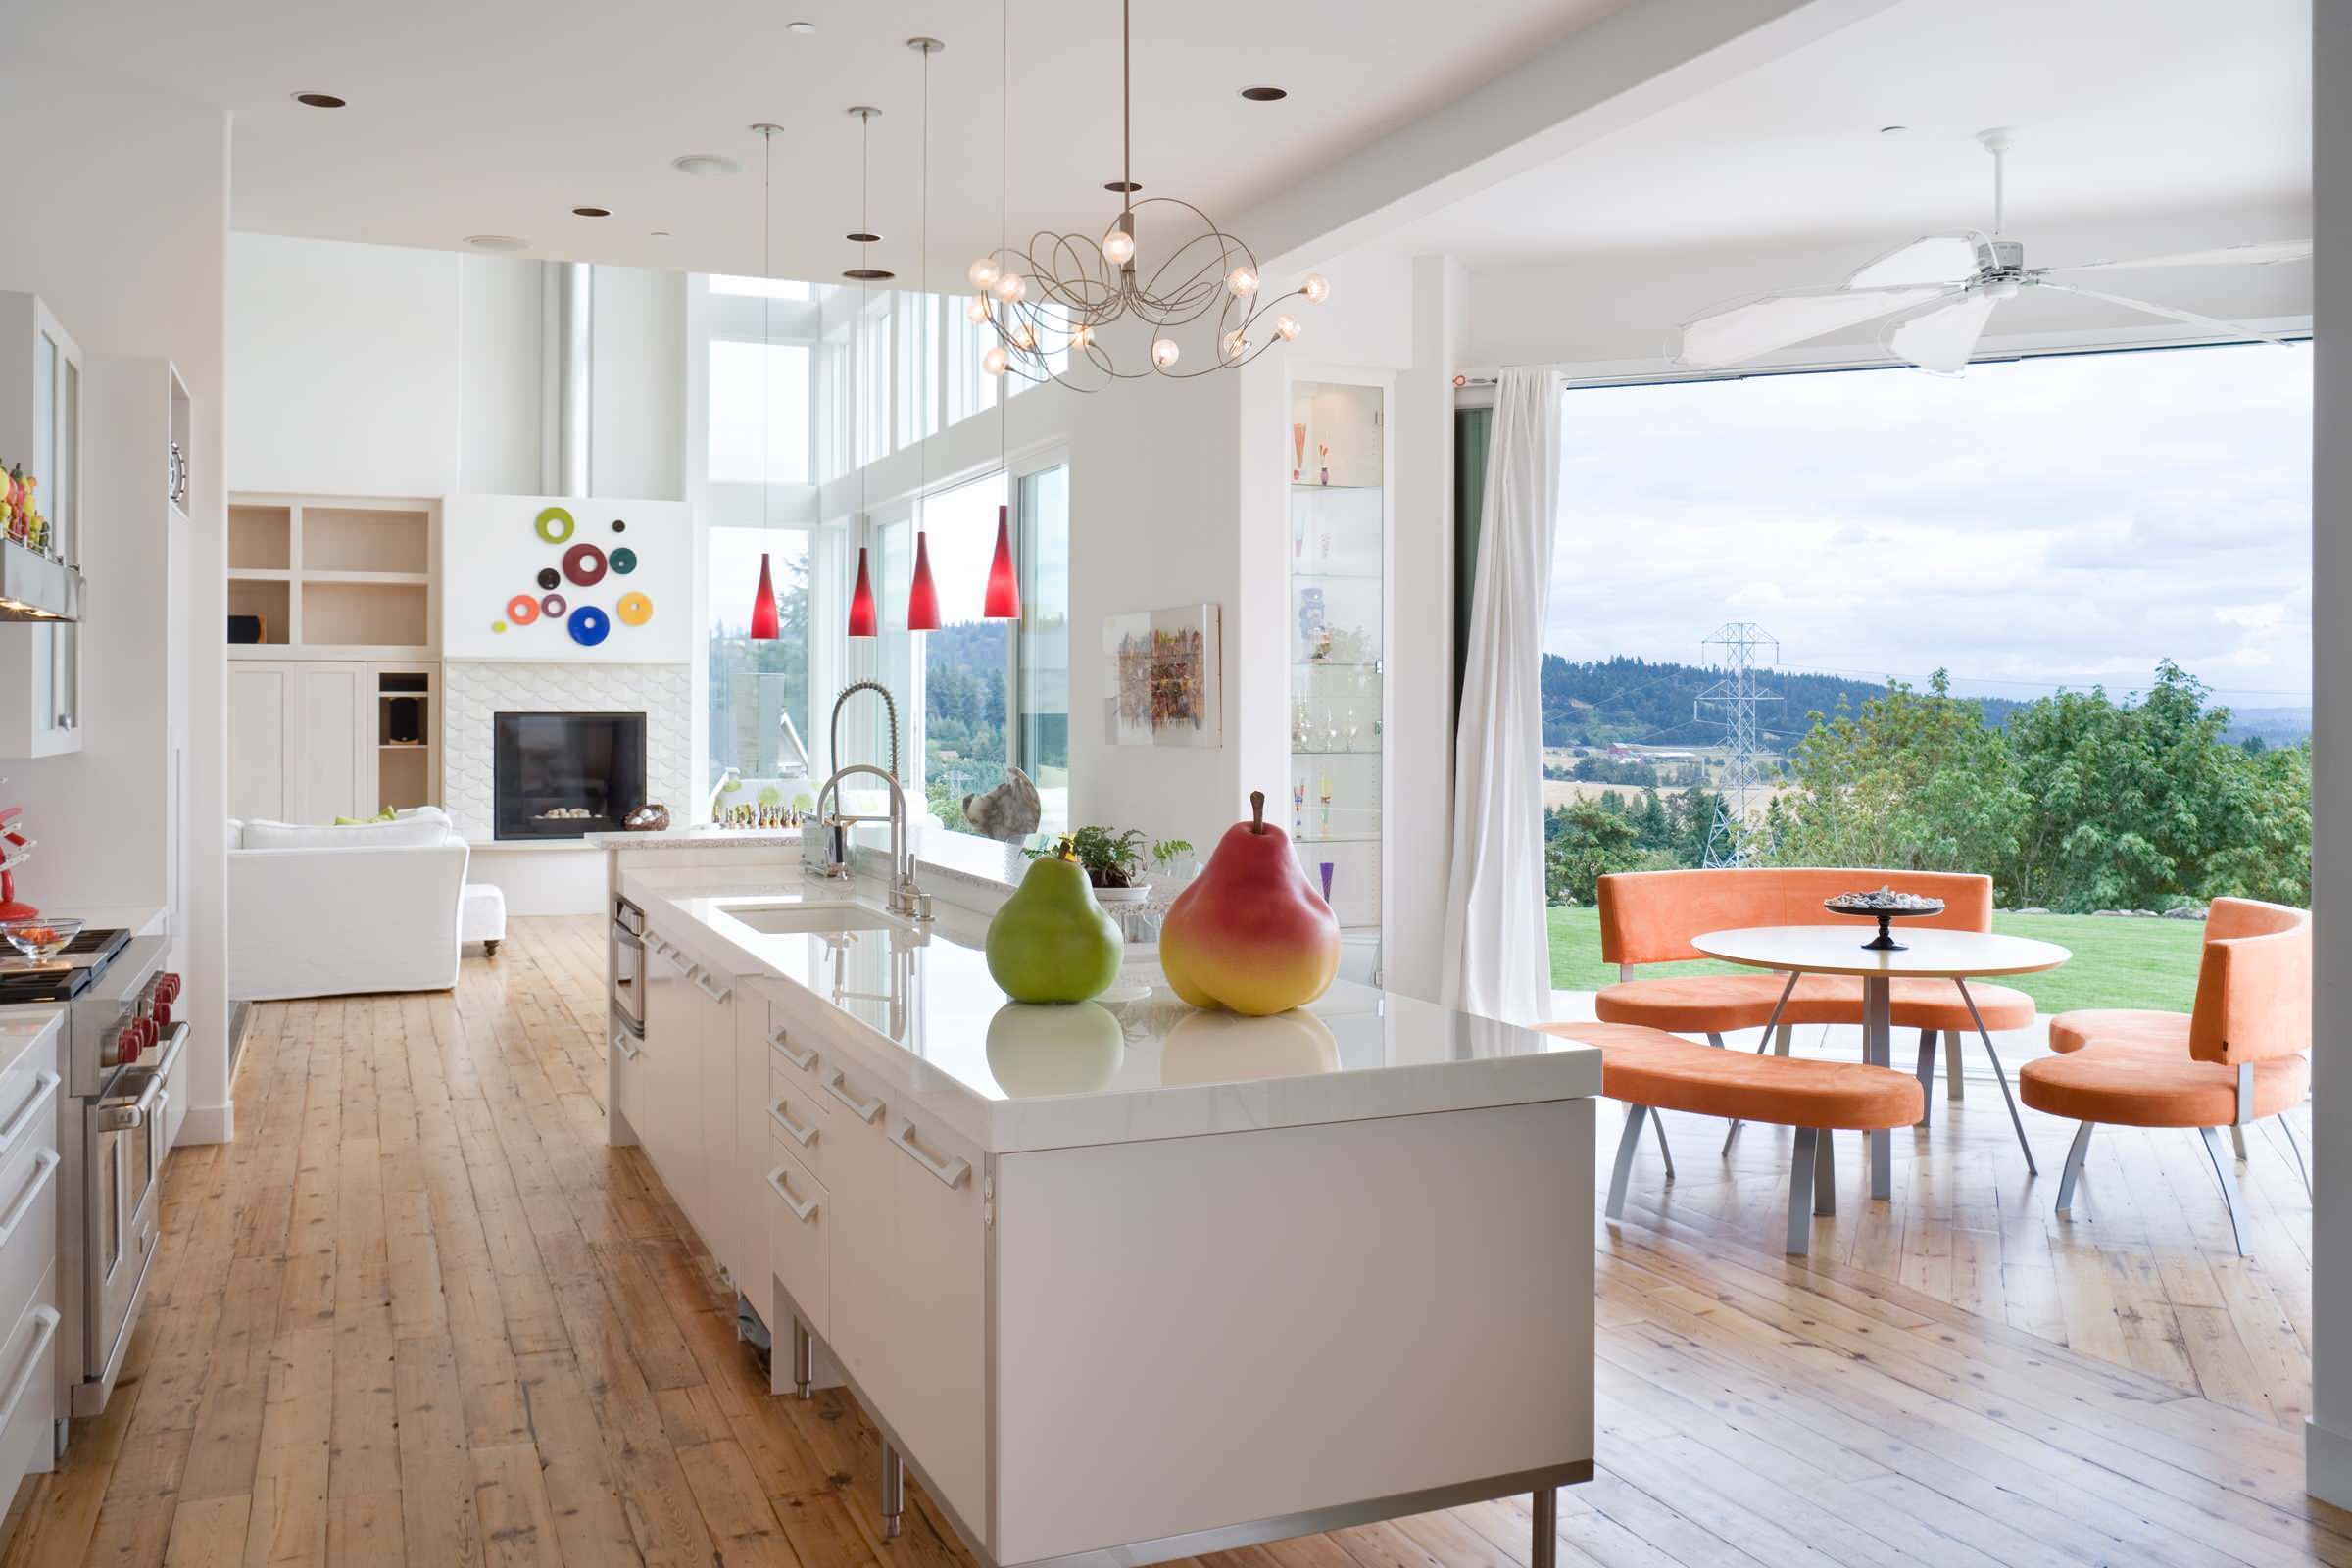 Inspiring Kitchen with Engineered Wood Flooring Ideas: Engineered Wood Flooring For Contemporary Kitchen Plus Seating Area With Orange Furniture In Outdoor Plus Ceiling Fan And Round Table Also White Kitchen Island With Undermount Sink